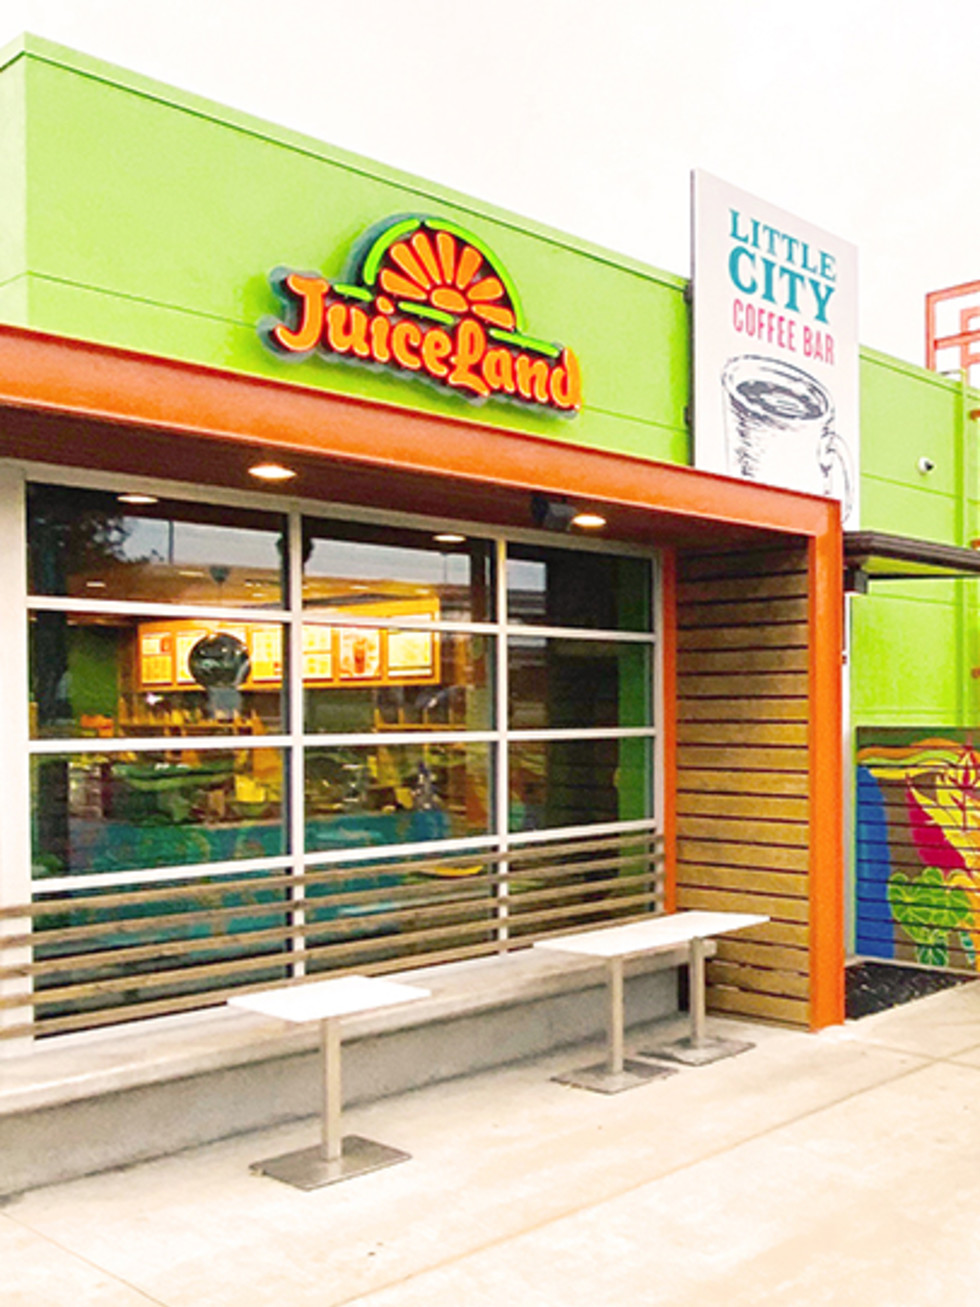 JuiceLand Little City drive-thru sunset valley